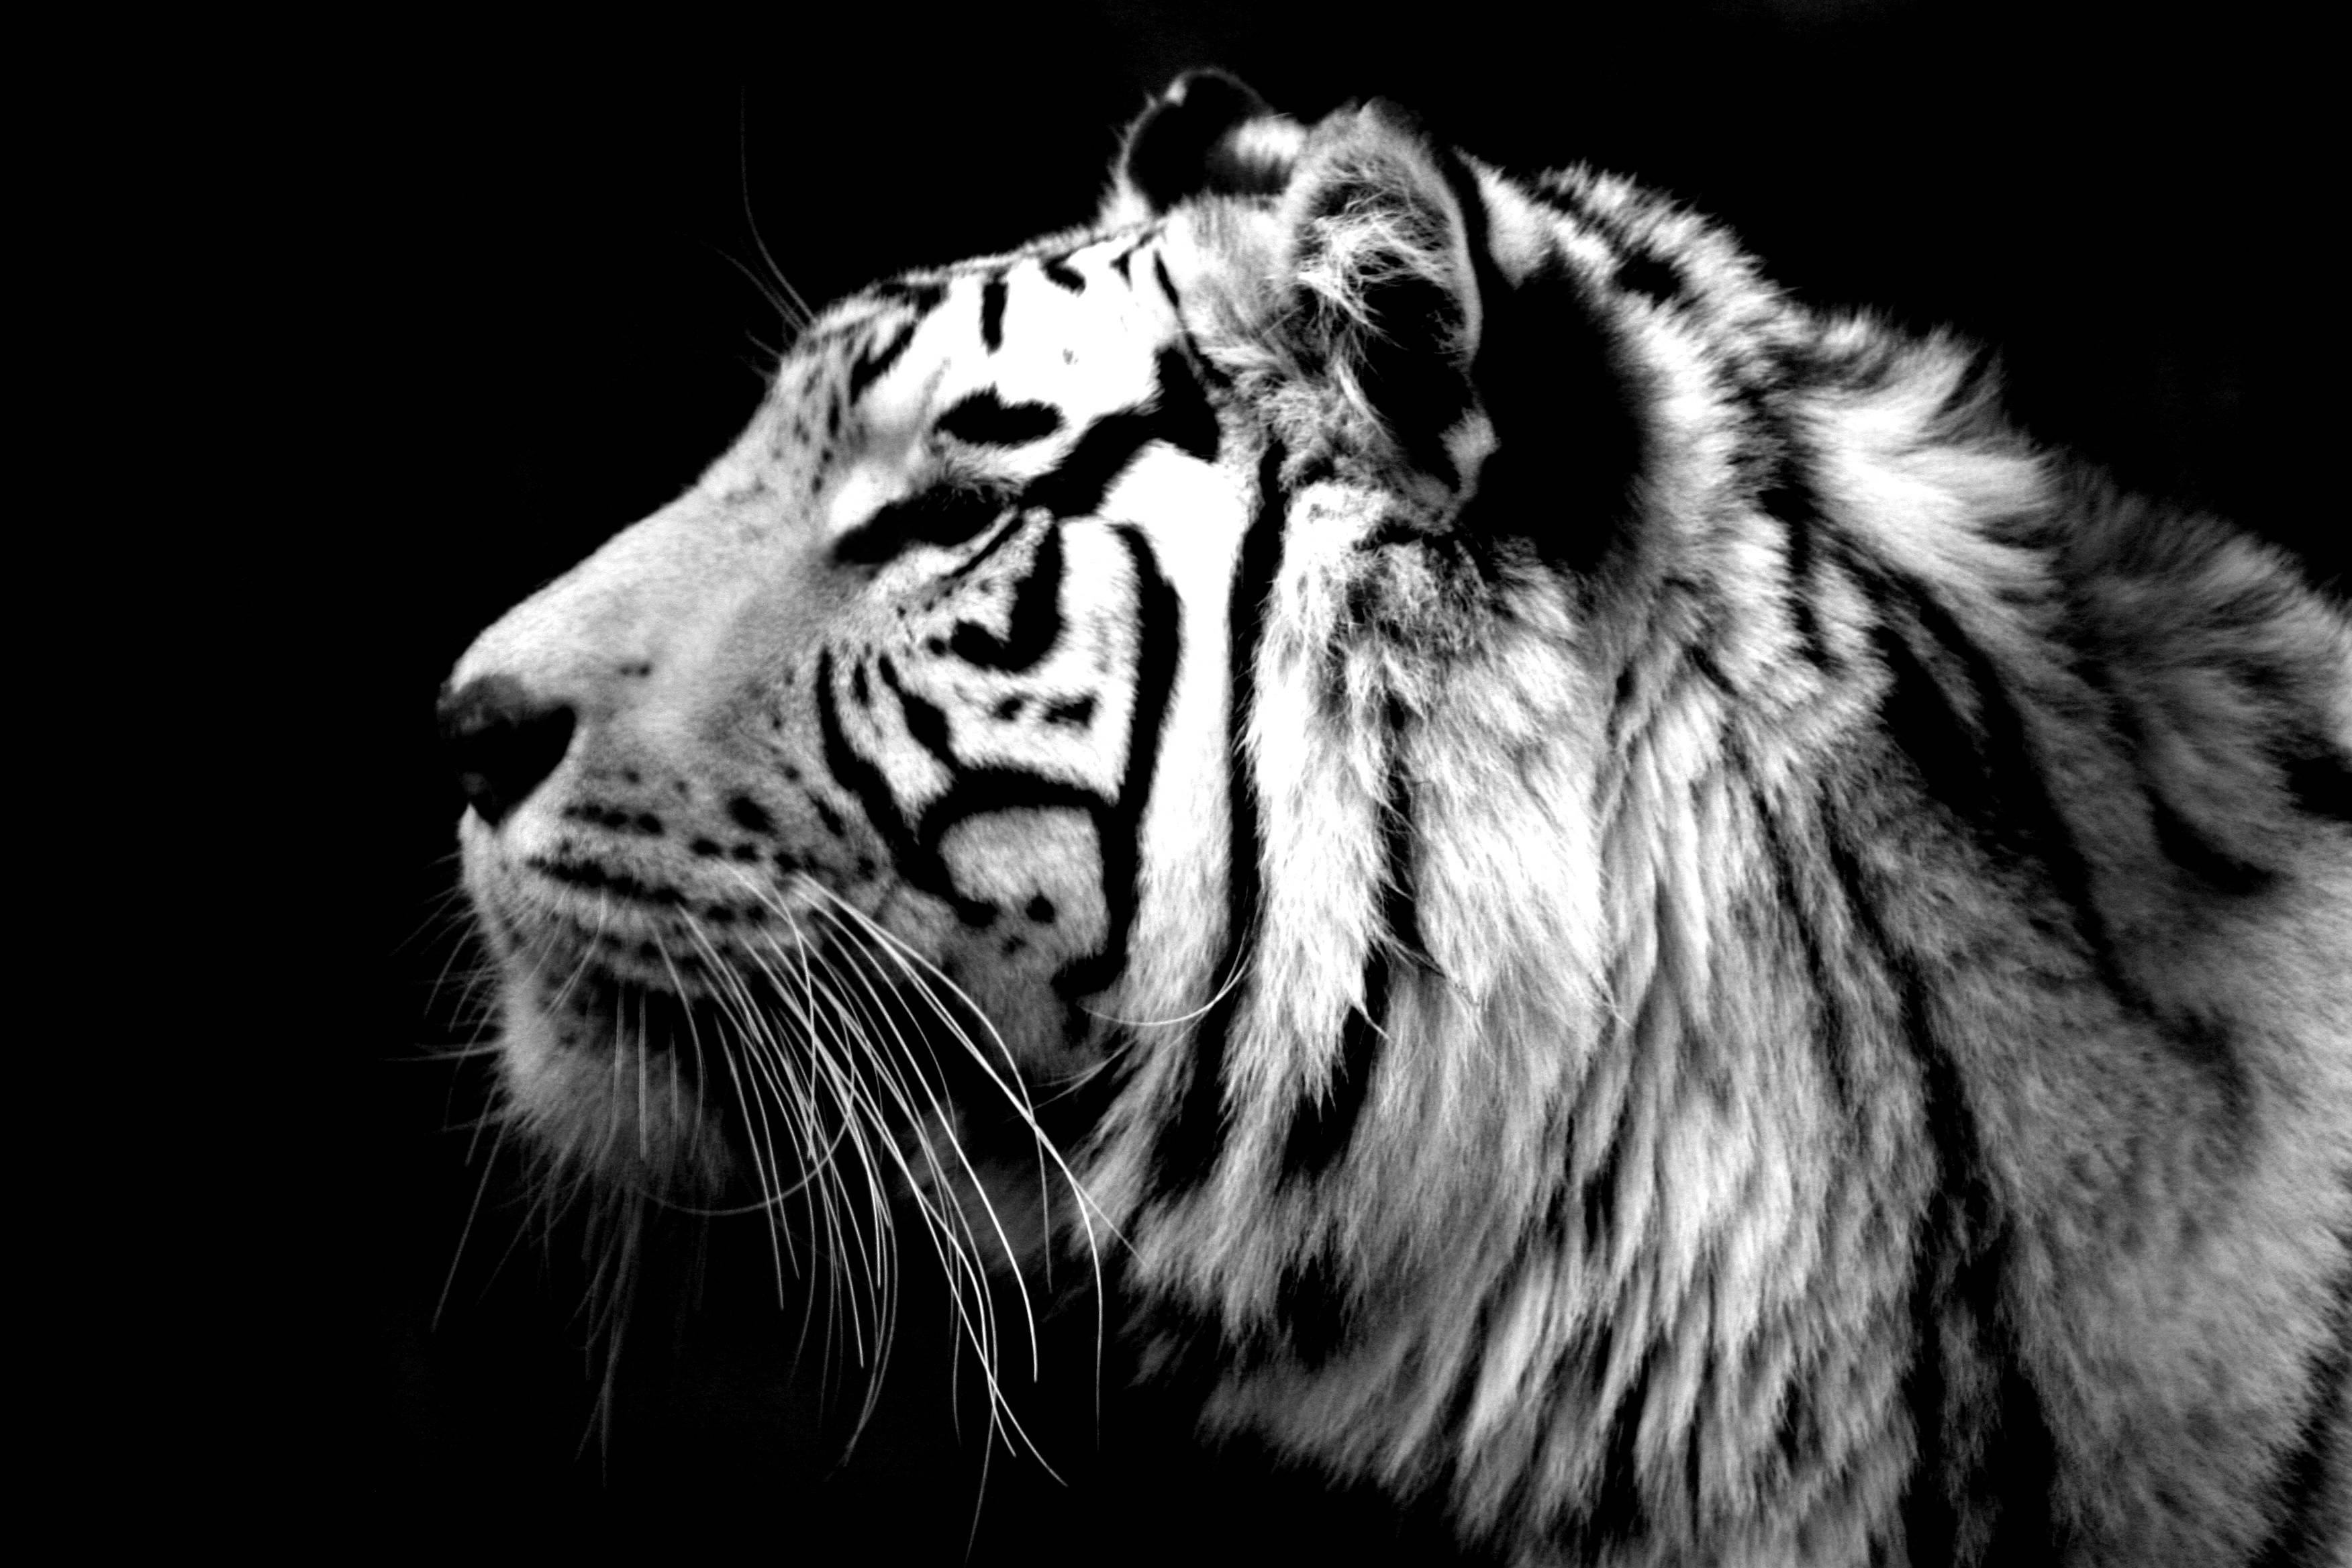 white tiger animal wallpaper - photo #19